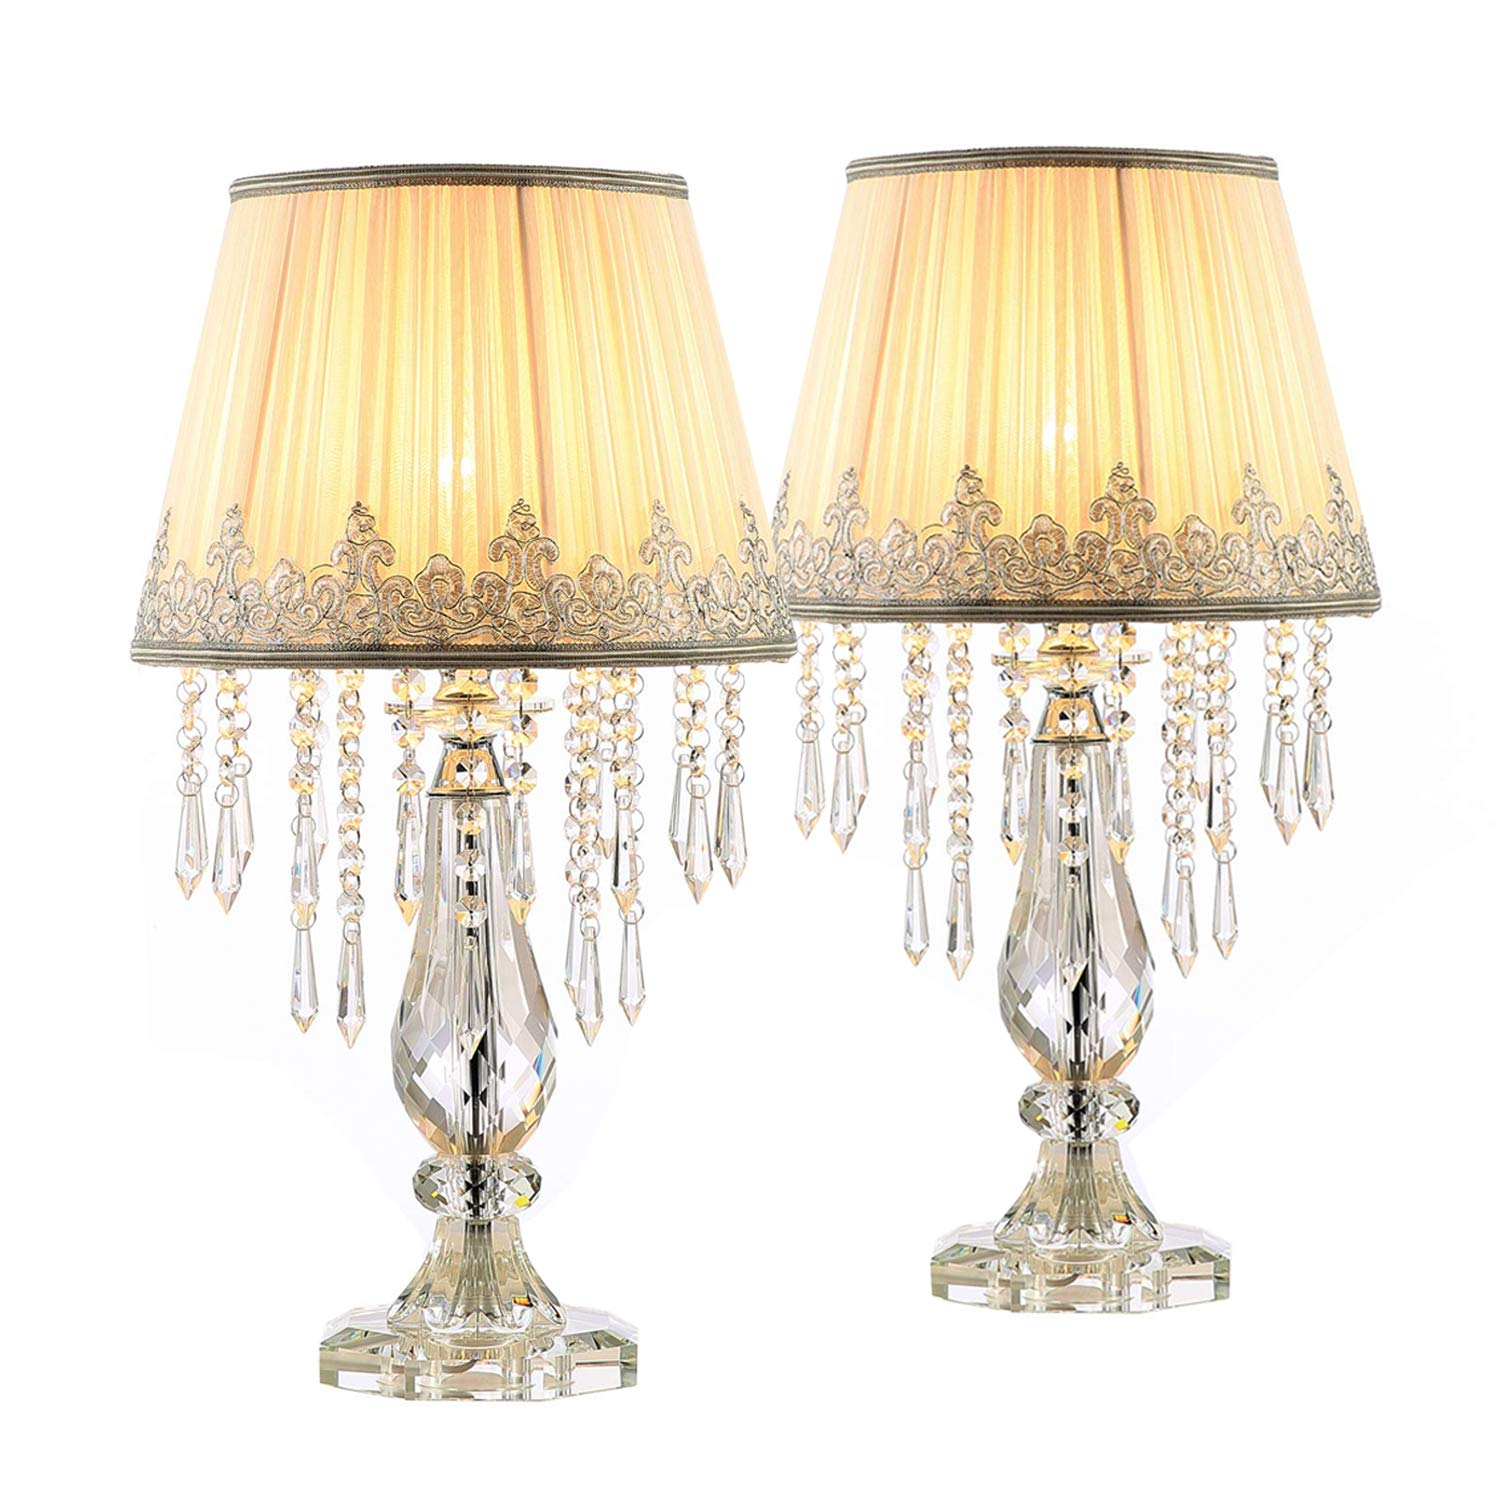 Moooni Two Set White Ruched Fabric Crystal Table Lamp Crystal Base Bedside Desk Lamp for Bedroom Living Room Set of 2 Dimmable W 12.8'' X H 22.8''